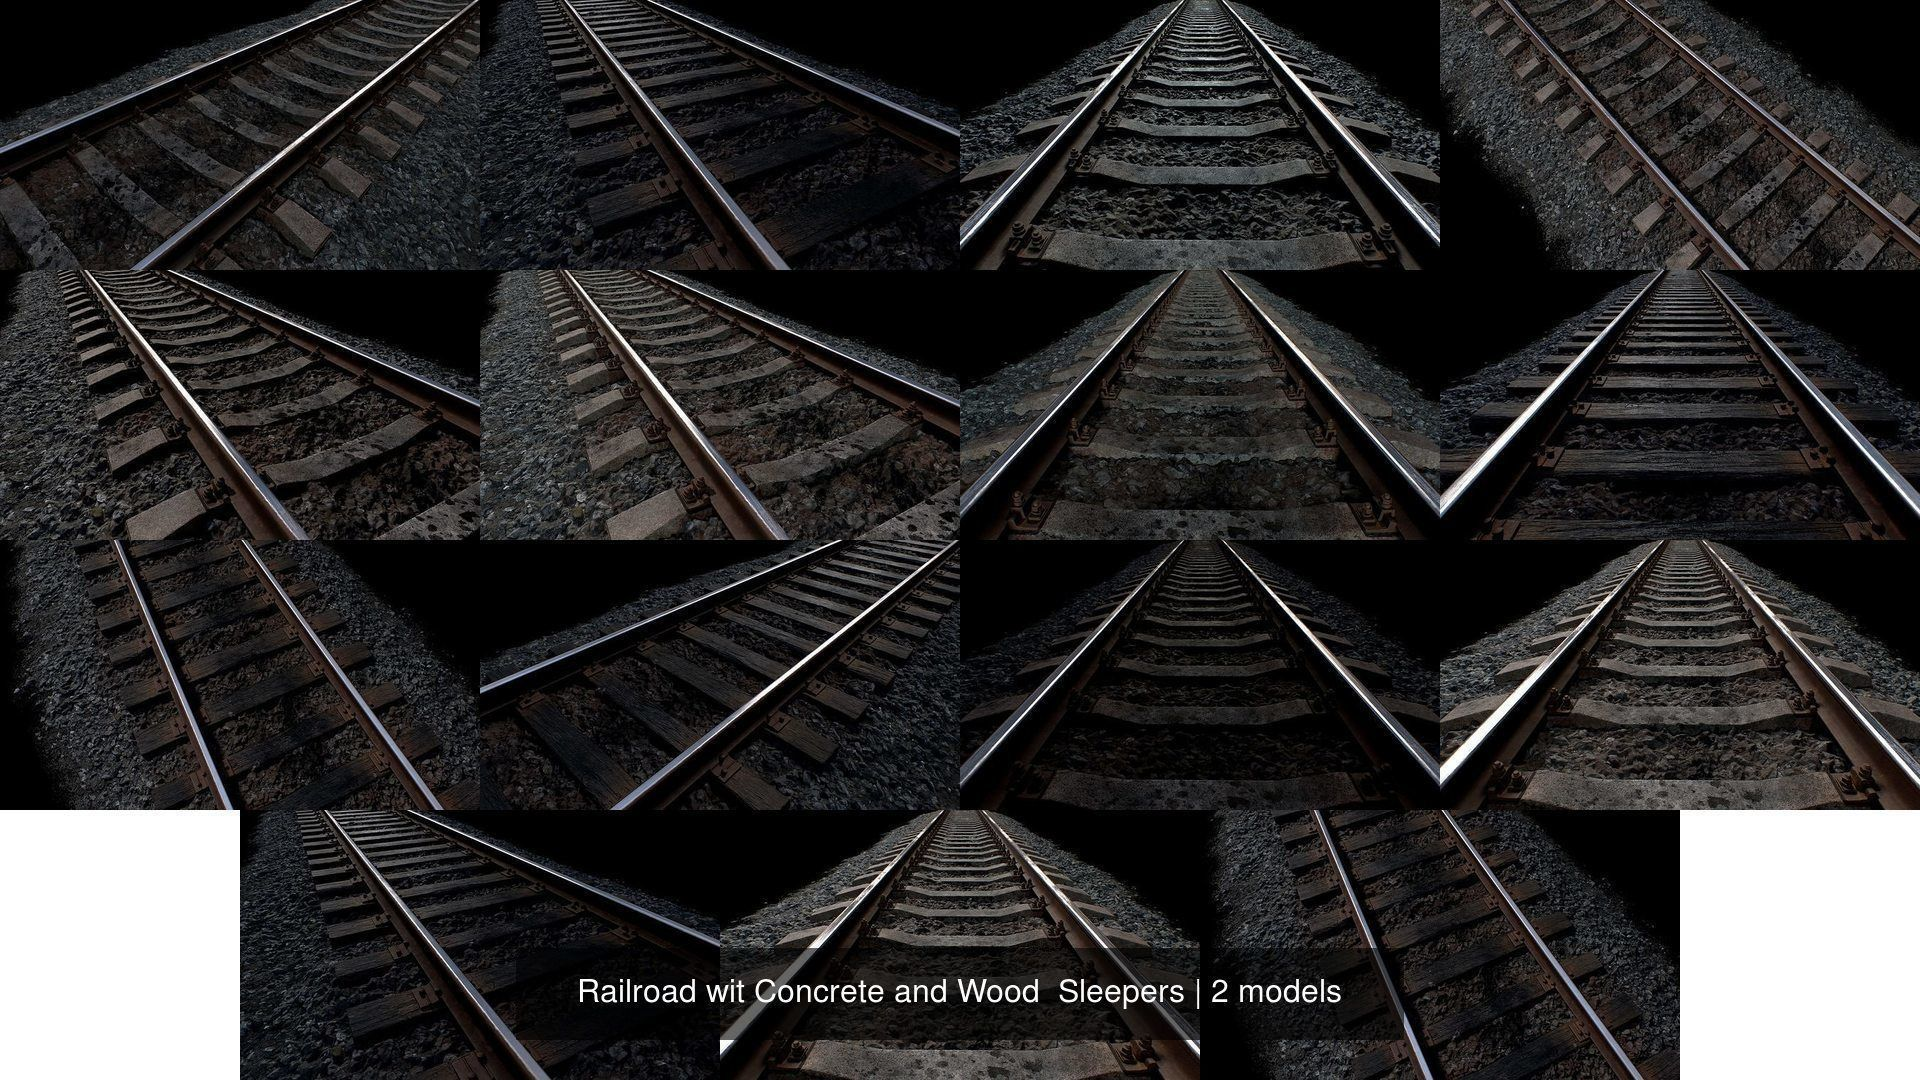 Railroad wit Concrete and Wood  Sleepers